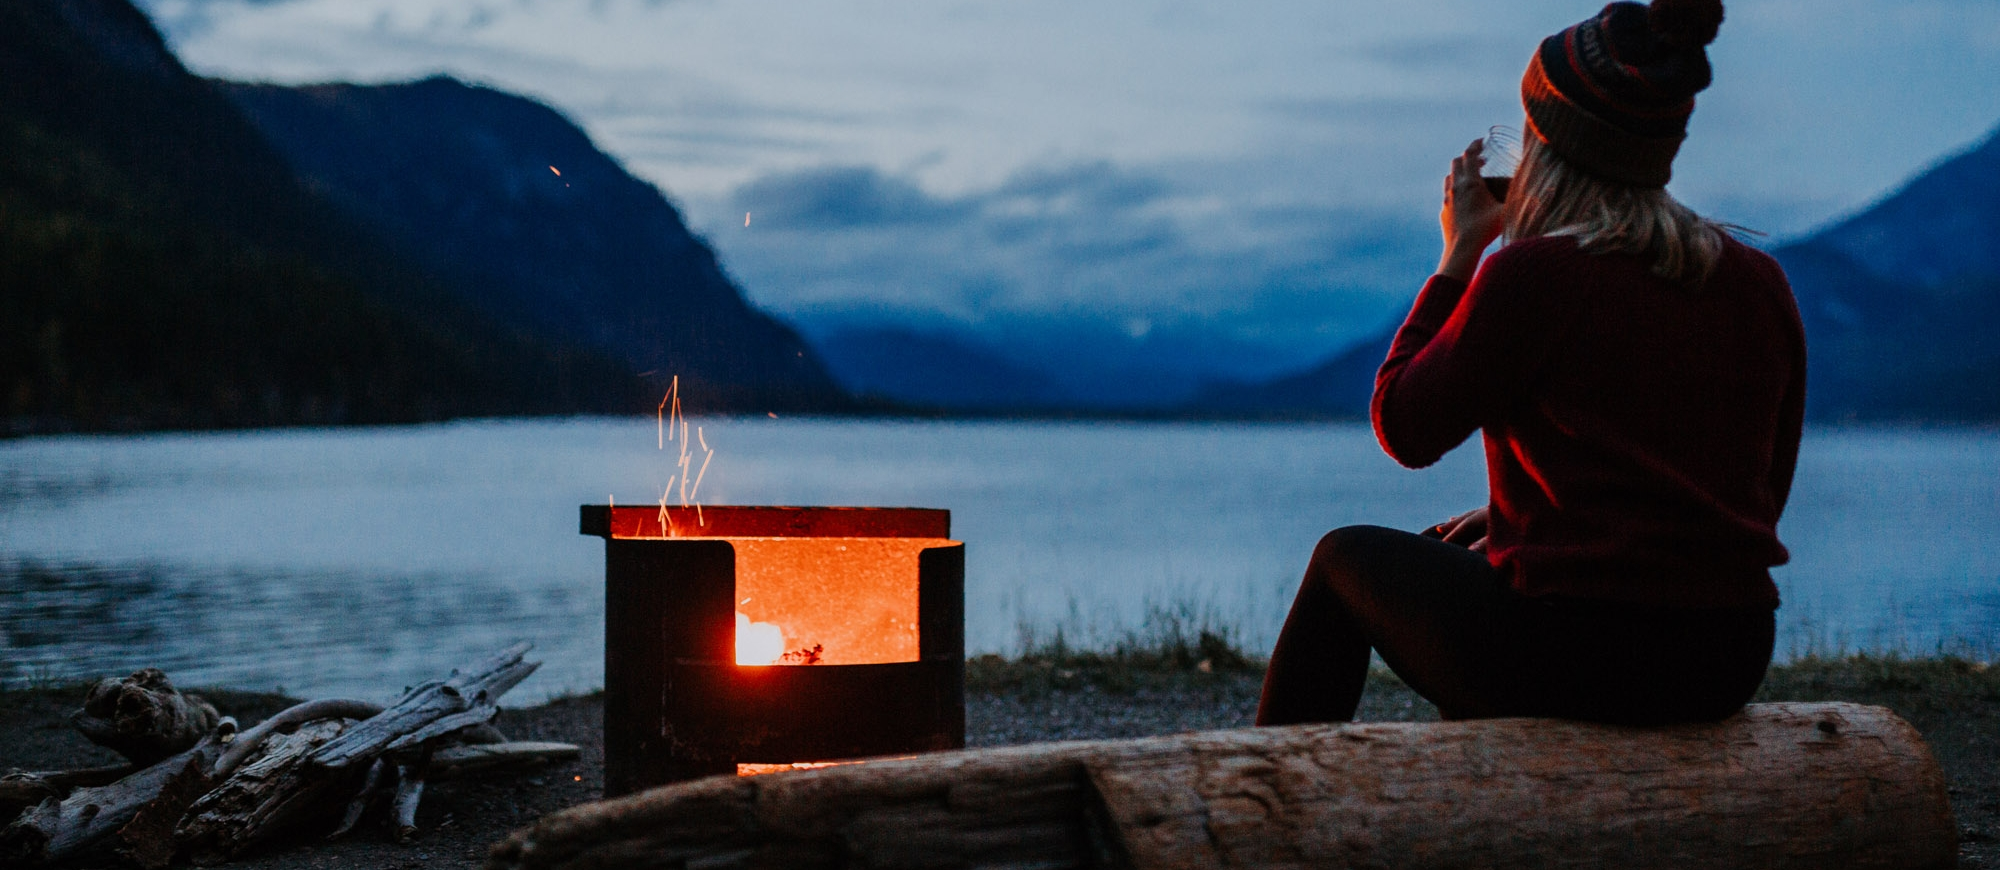 A girl sitting by a campfire on the shores of Kootenay Lake, BC.